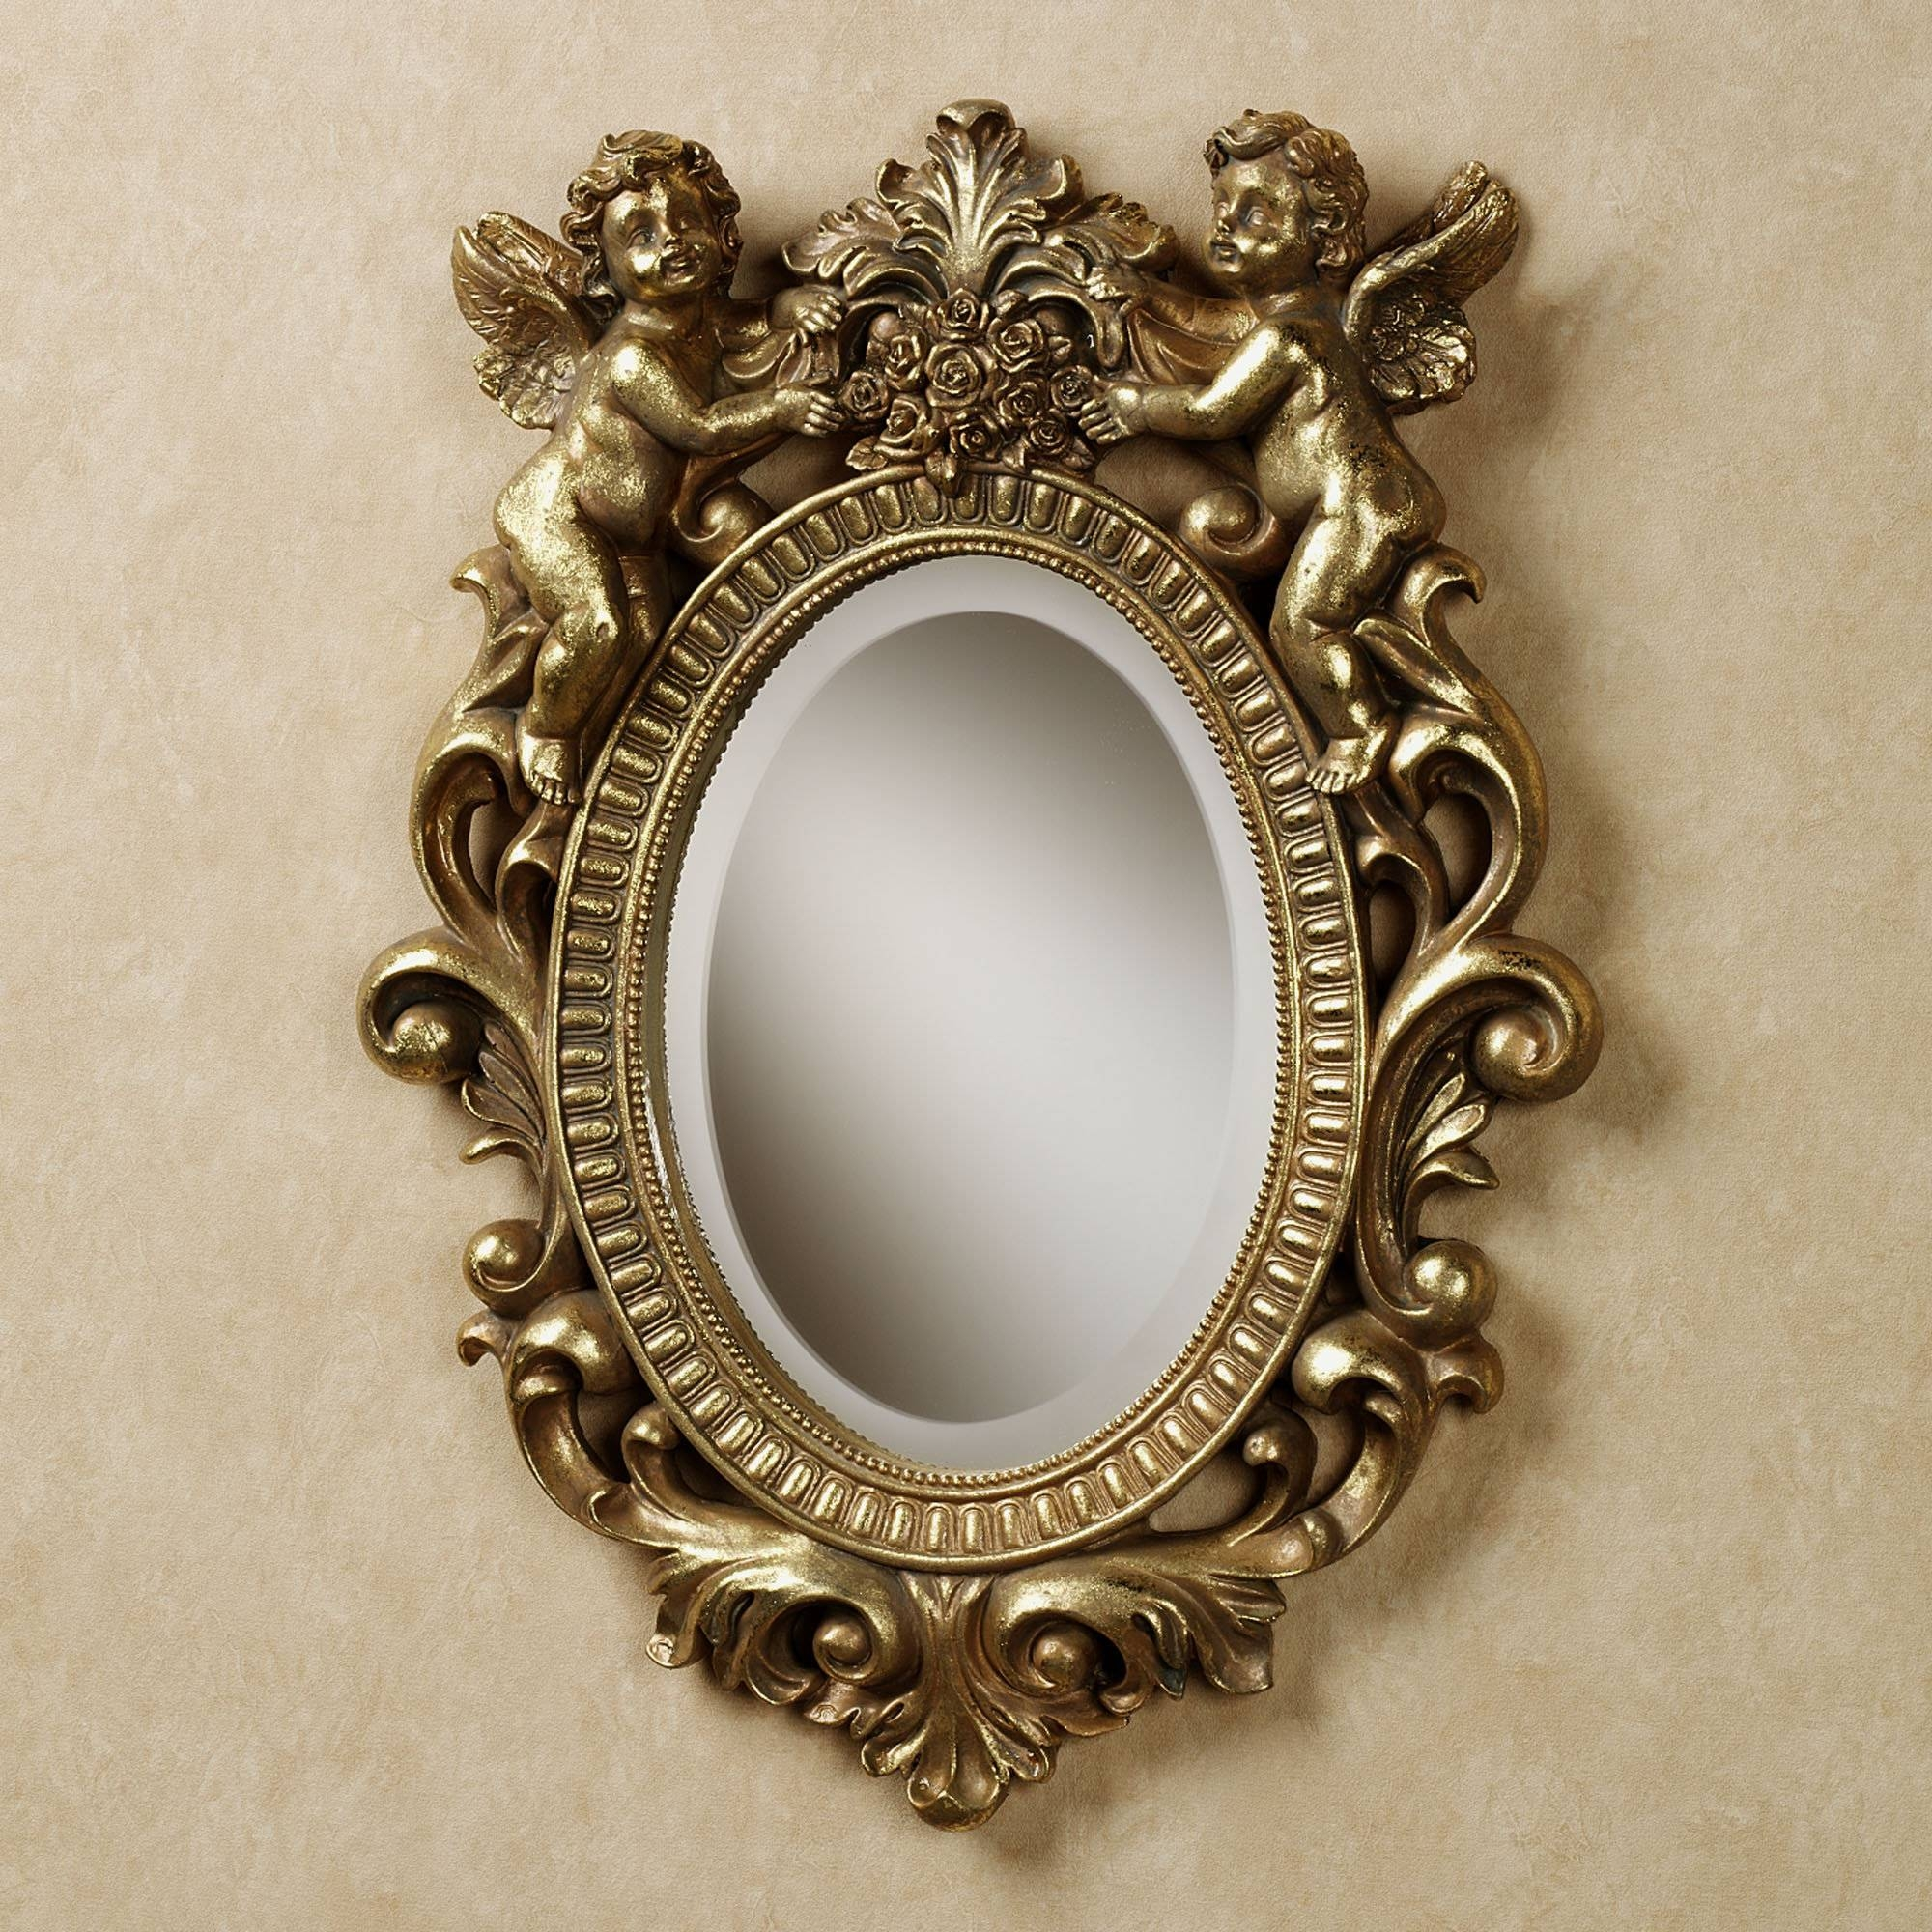 Home Decor: Antique Wall Mirror,antique Mirror,wall Mirrordecor ???? pertaining to Gold Antique Mirrors (Image 16 of 25)